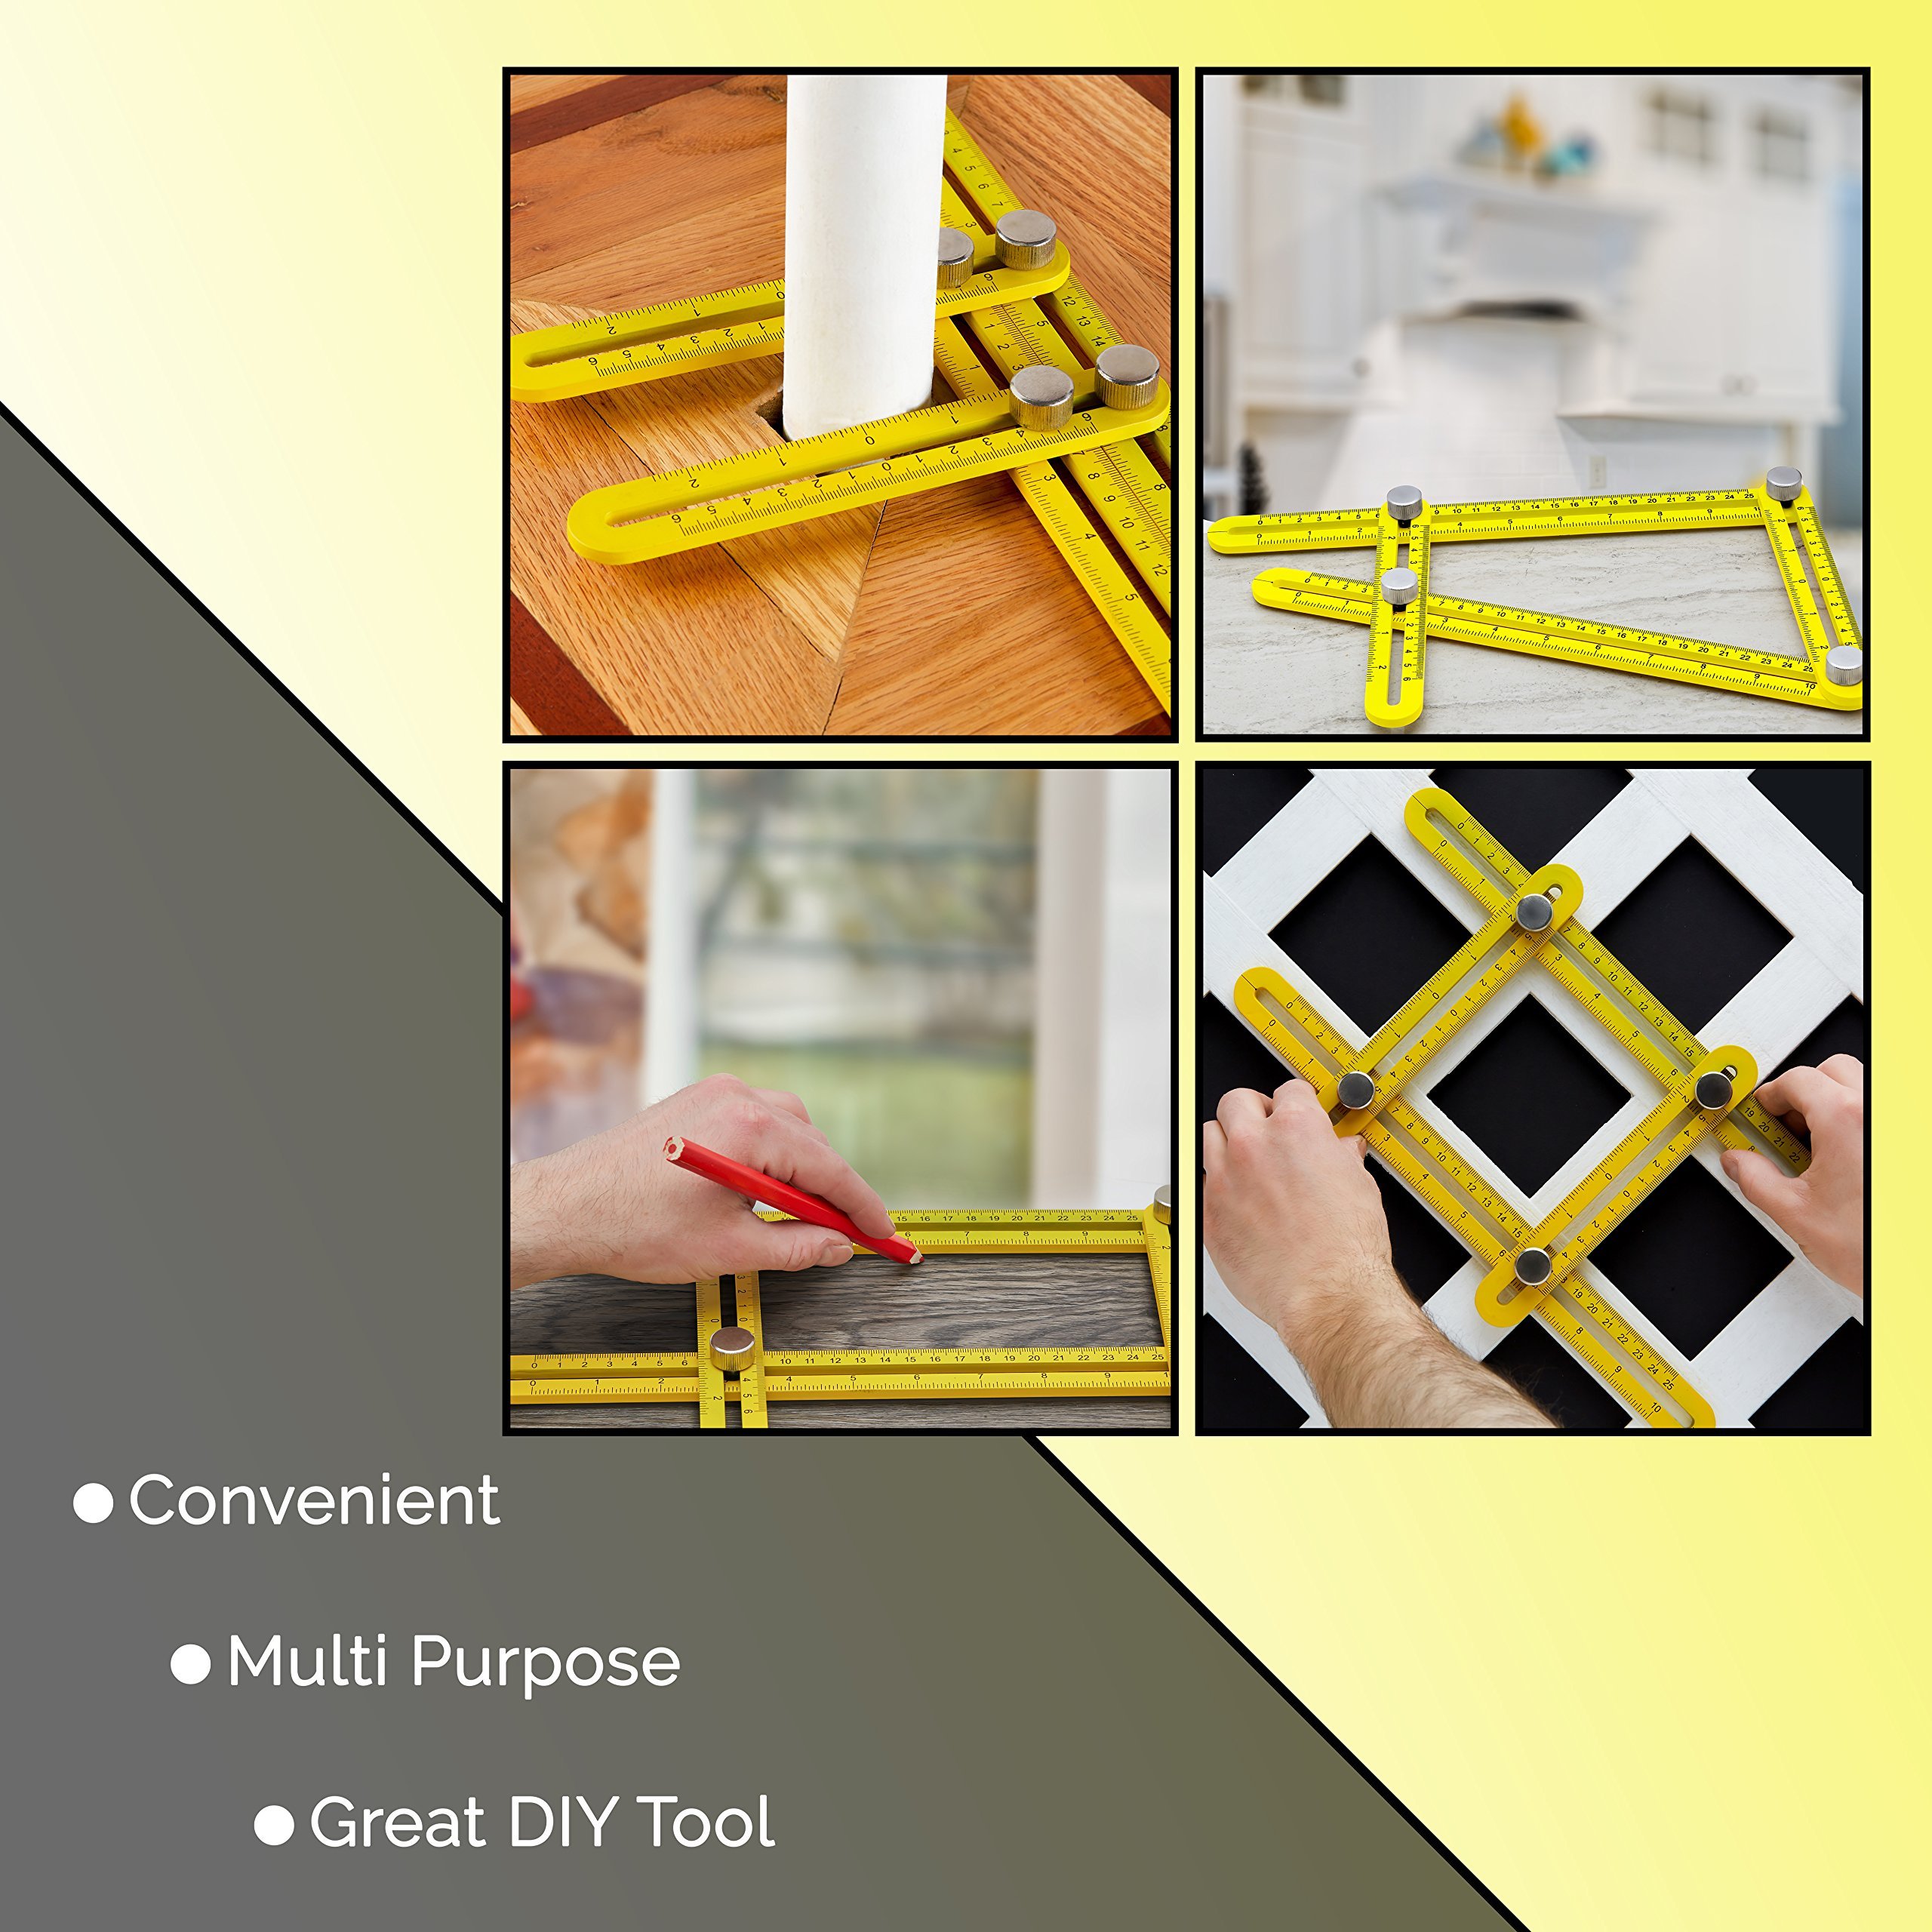 Universal Angularizer Ruler and Multi-Angle Measuring Tool in Yellow Metal - Template Tool Makes Great Gifts for Men Him Husband Dad Father DIY by Premium Rhino (Image #2)